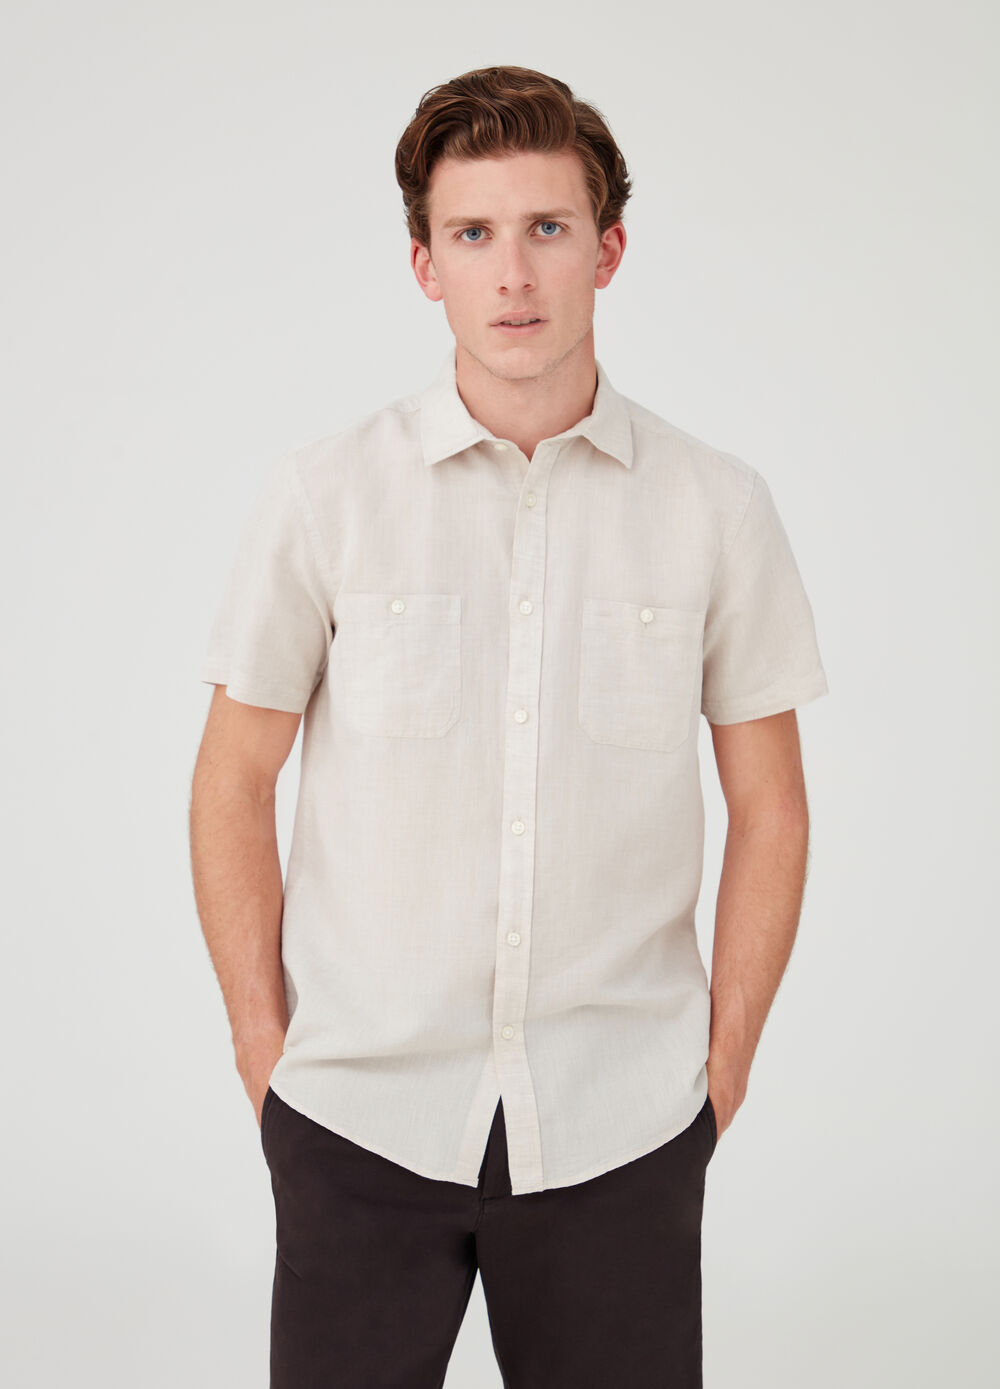 Short-sleeved shirt with button and pockets